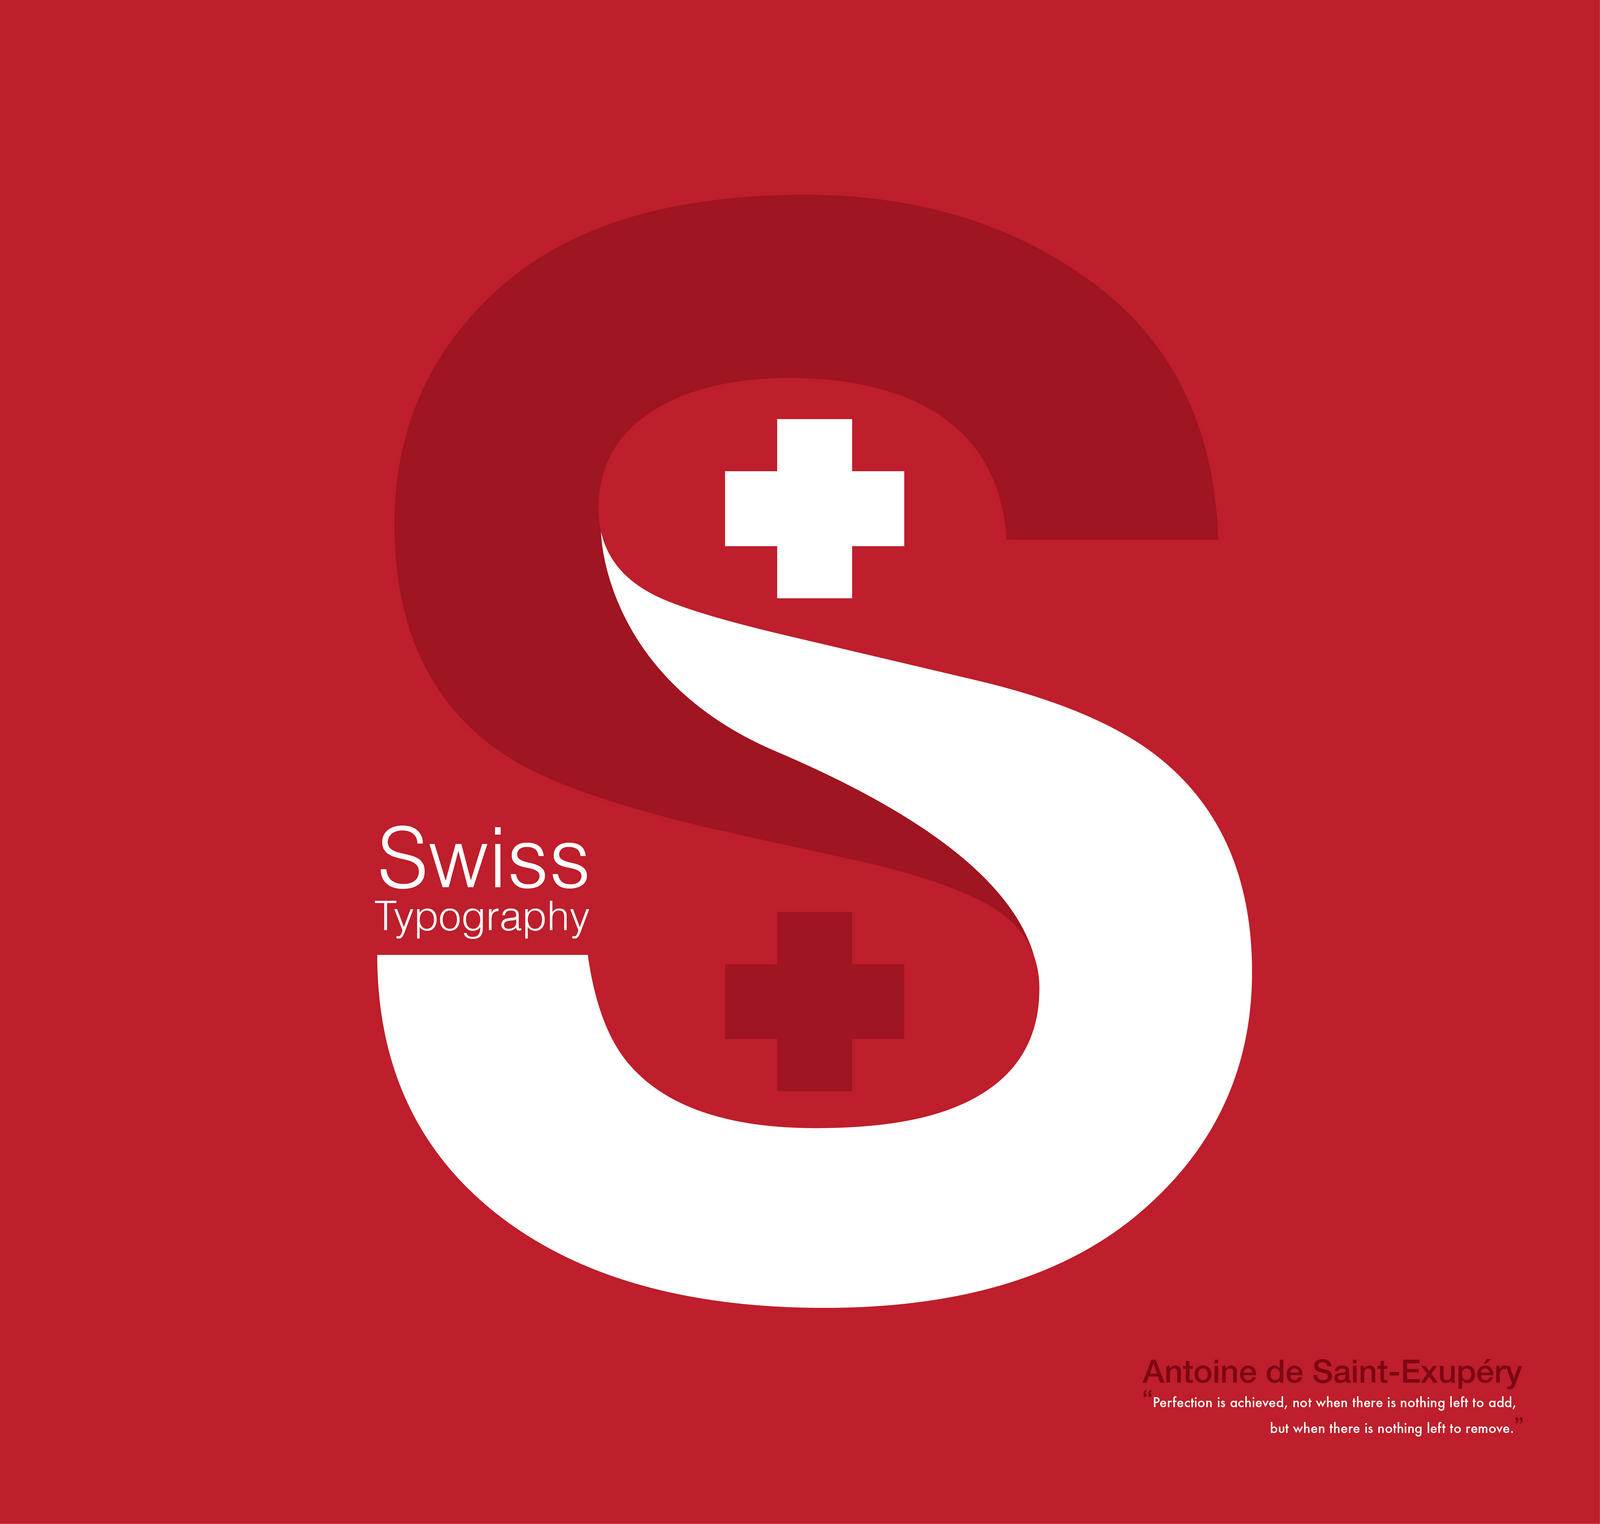 Swiss Style Graphic Design Today